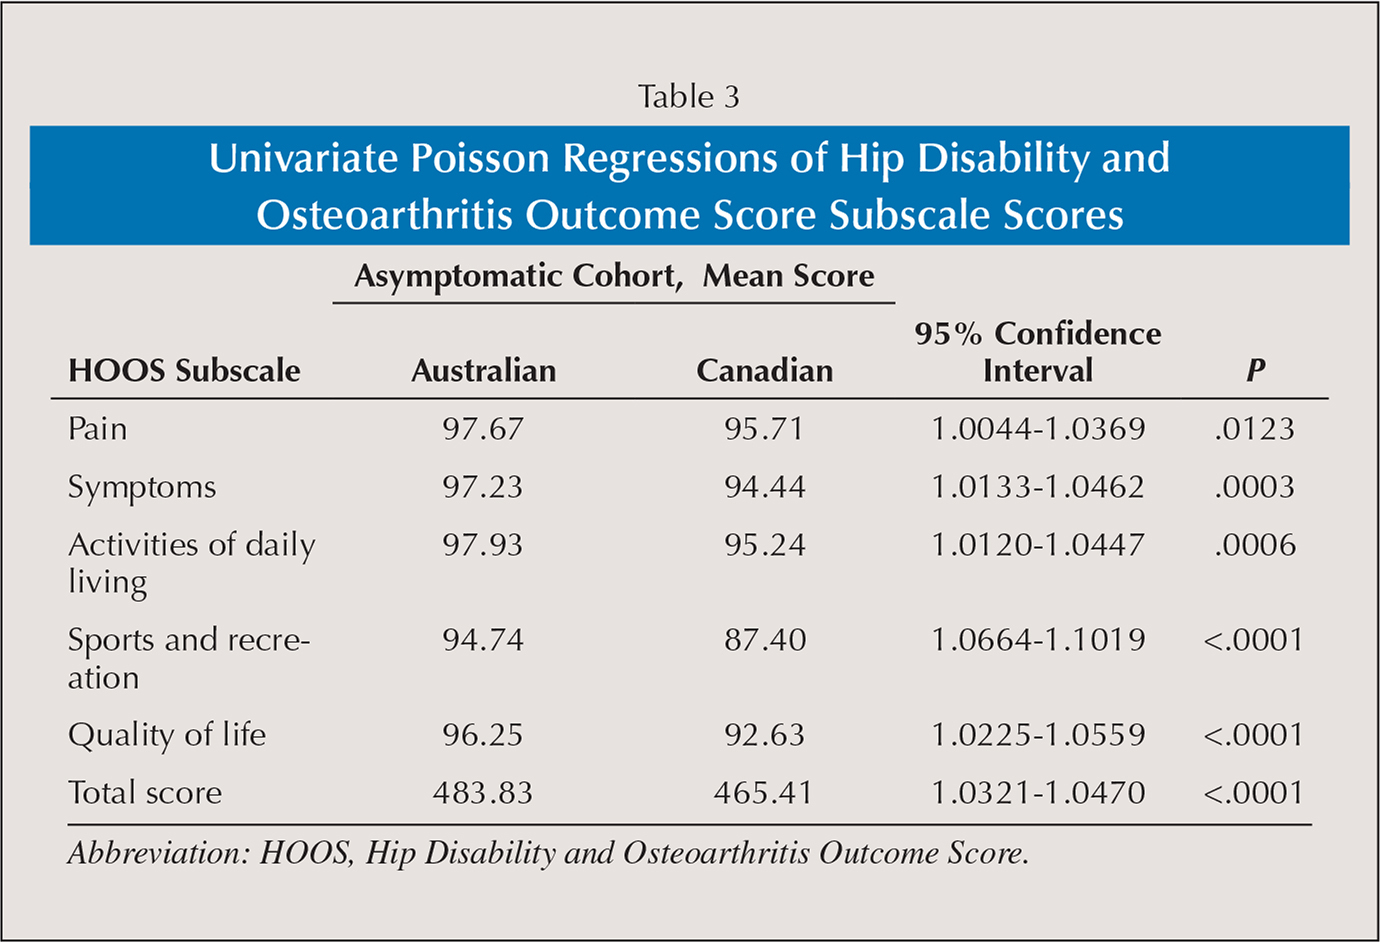 Univariate Poisson Regressions of Hip Disability and Osteoarthritis Outcome Score Subscale Scores